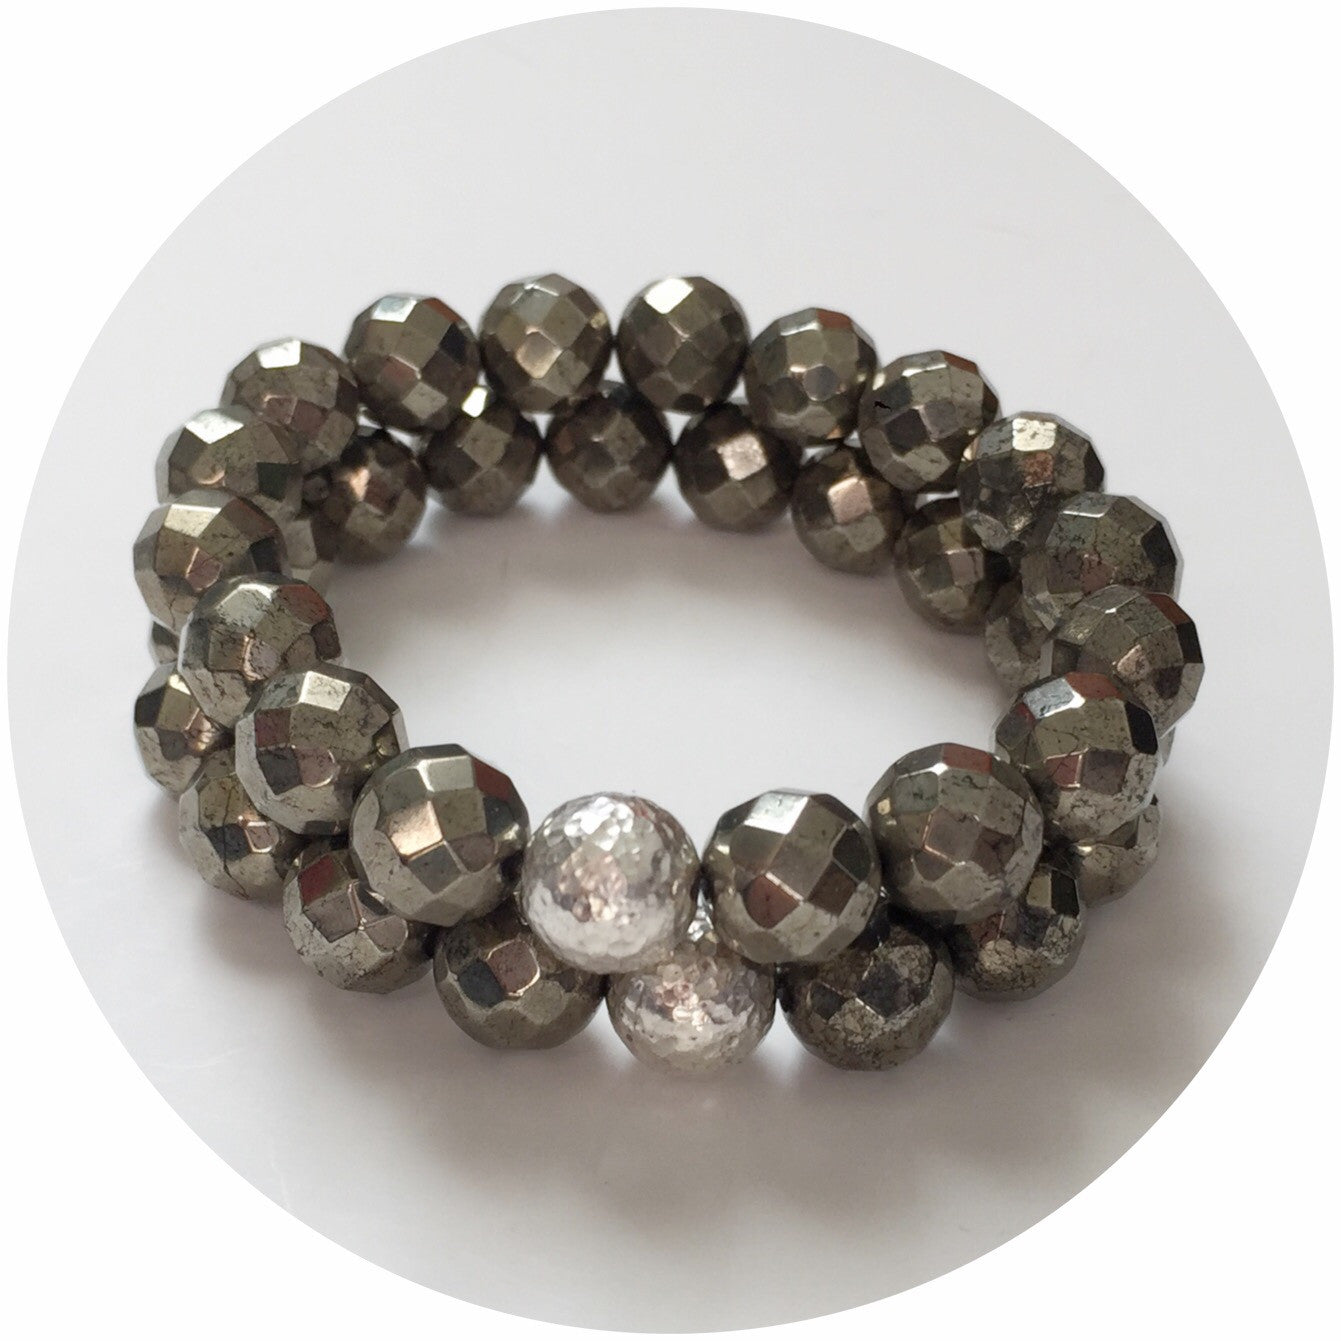 Pyrite with Hammered Sterling Silver Accent - Oriana Lamarca LLC